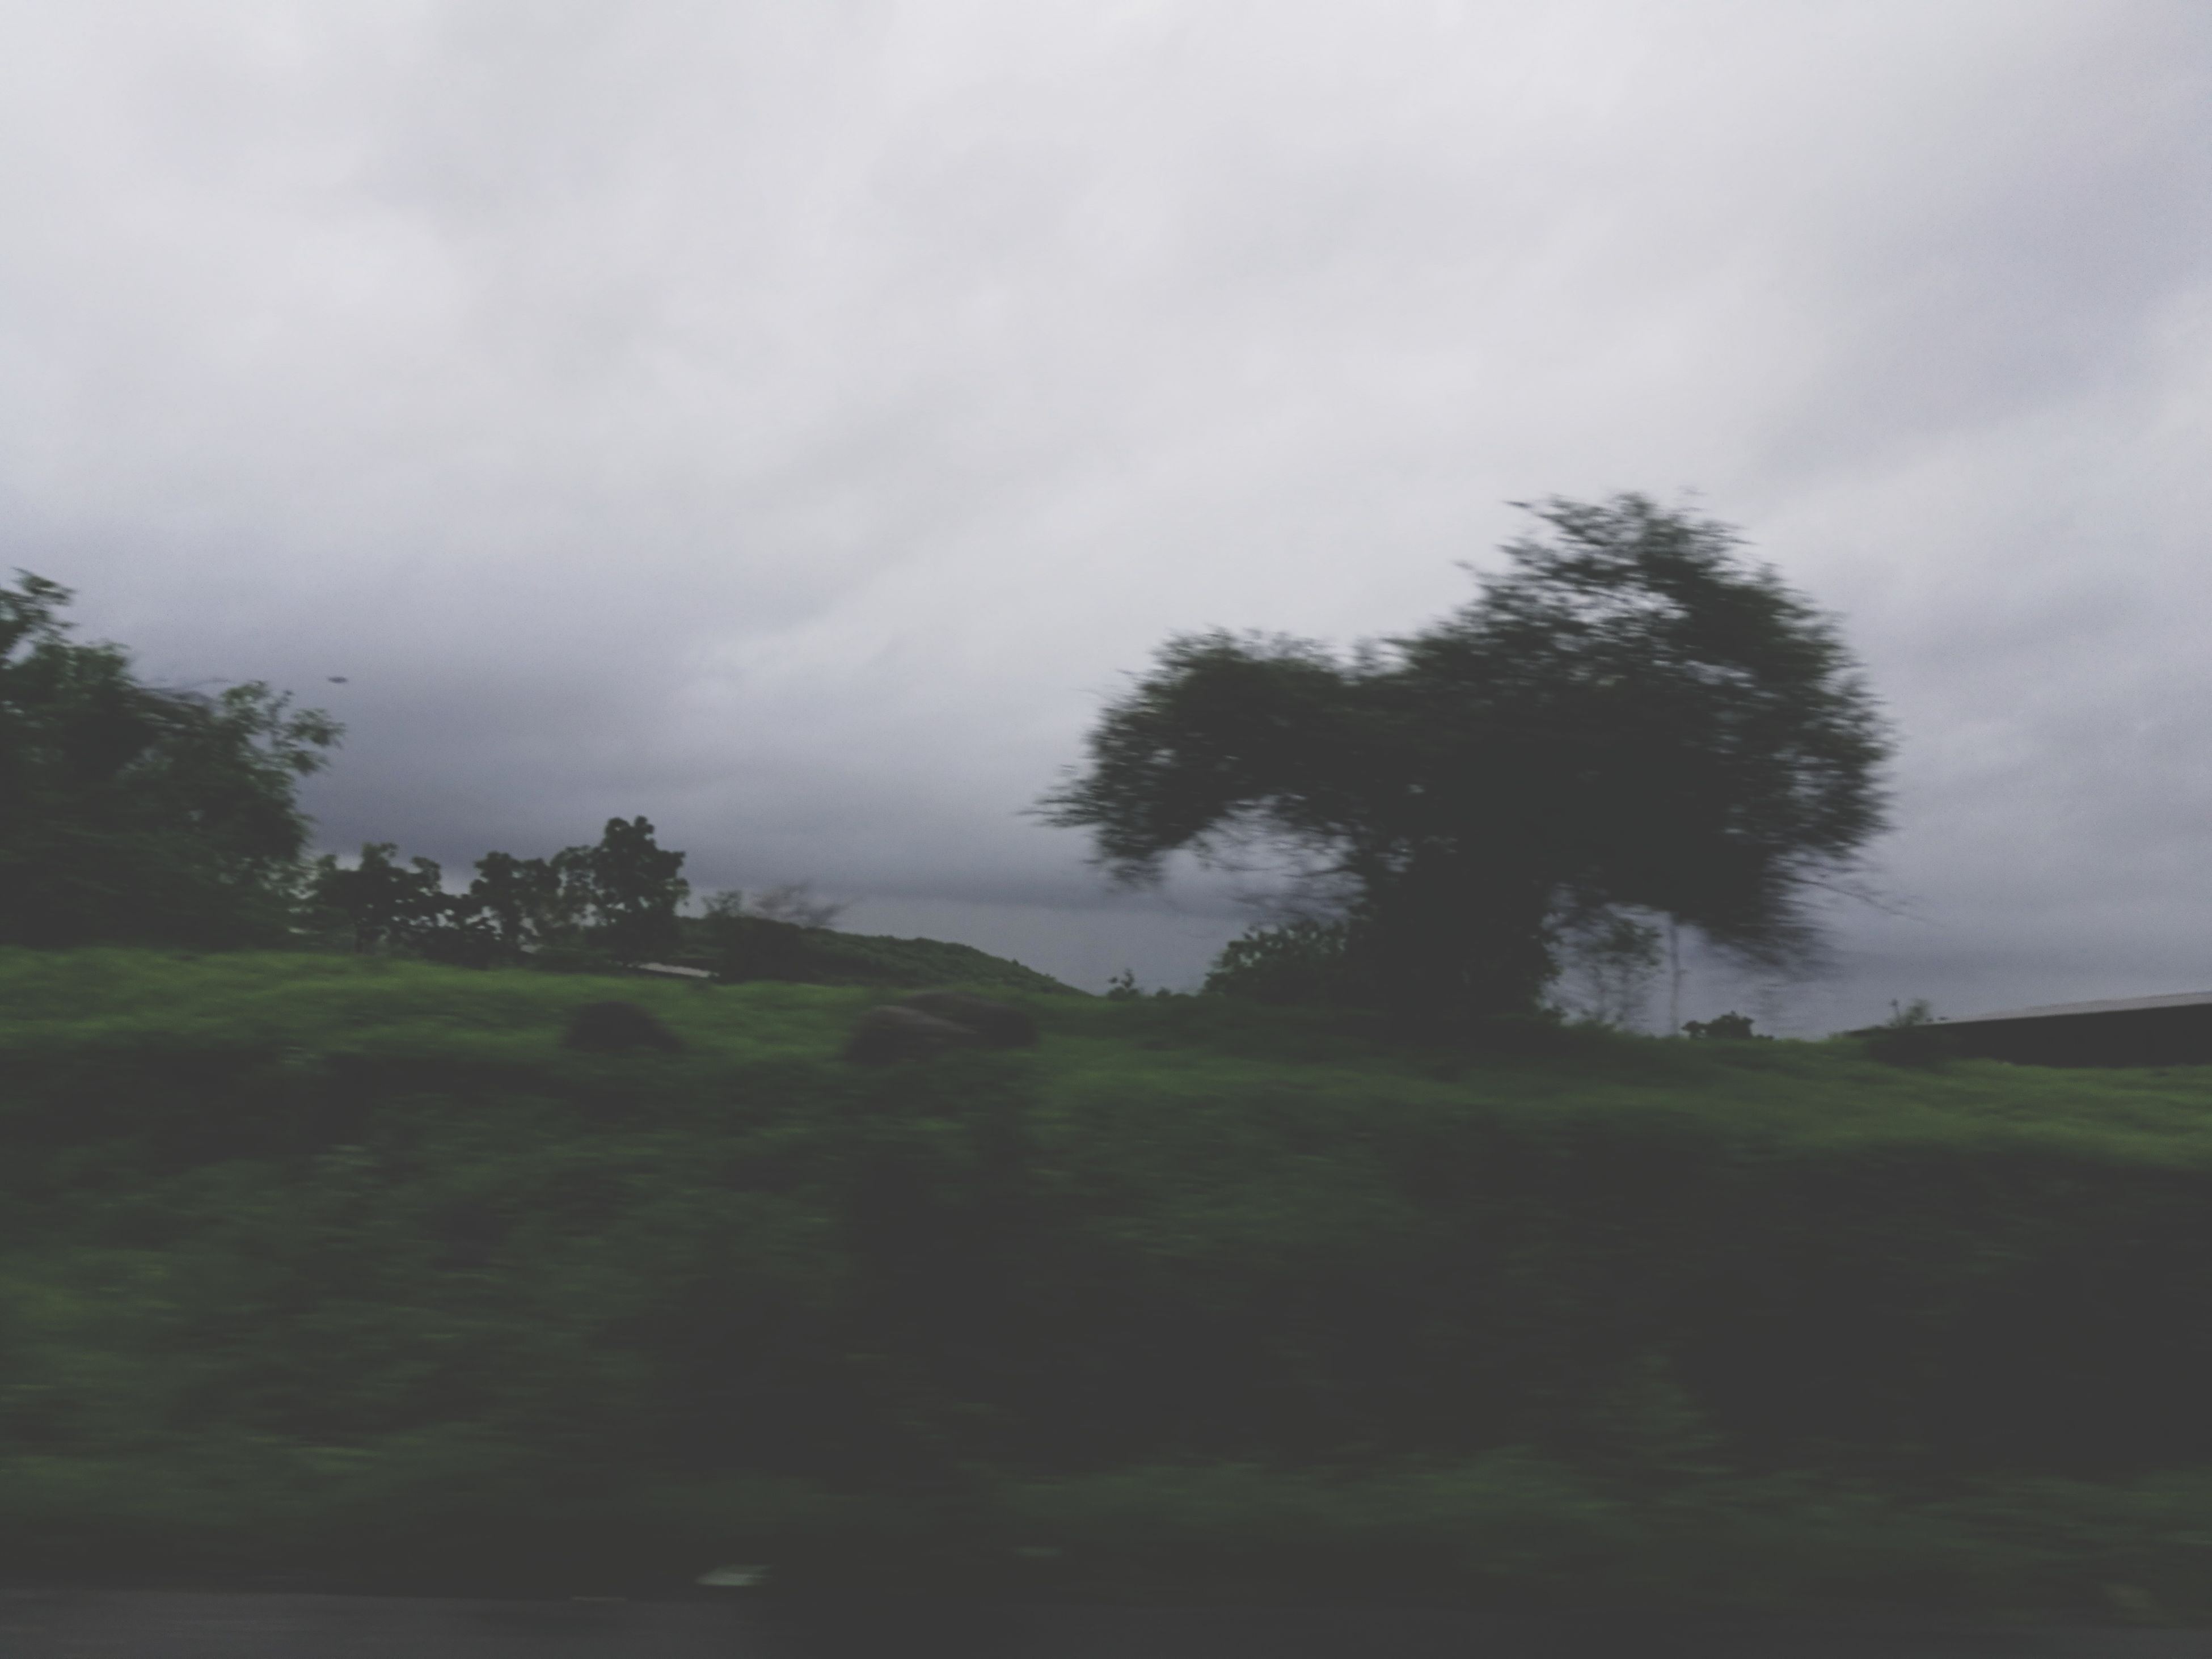 tree, landscape, tranquility, nature, tranquil scene, beauty in nature, scenics, grass, no people, sky, outdoors, field, cloud - sky, green color, day